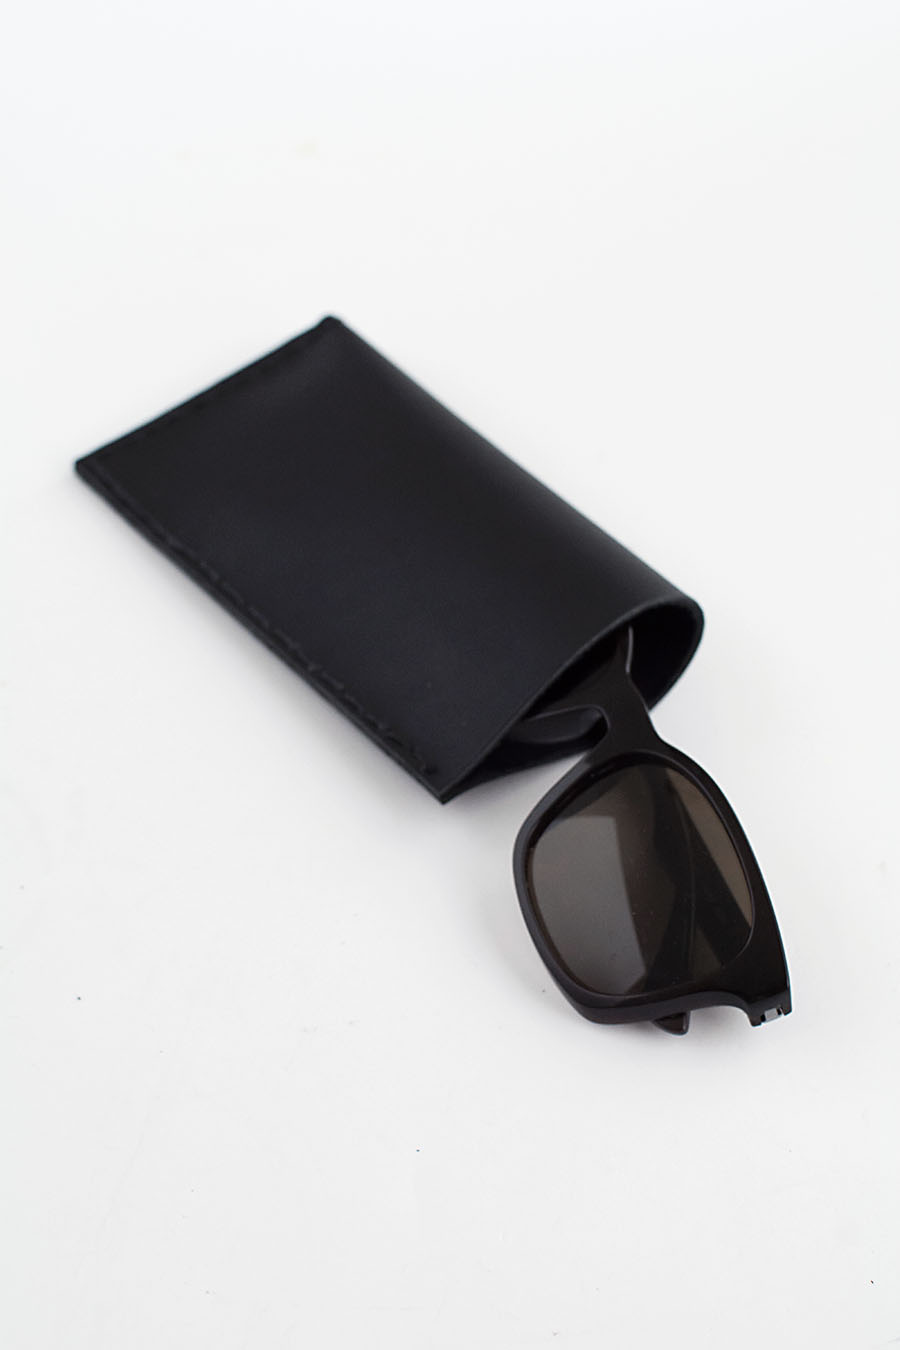 Leather Sunglasses Pouch DIY